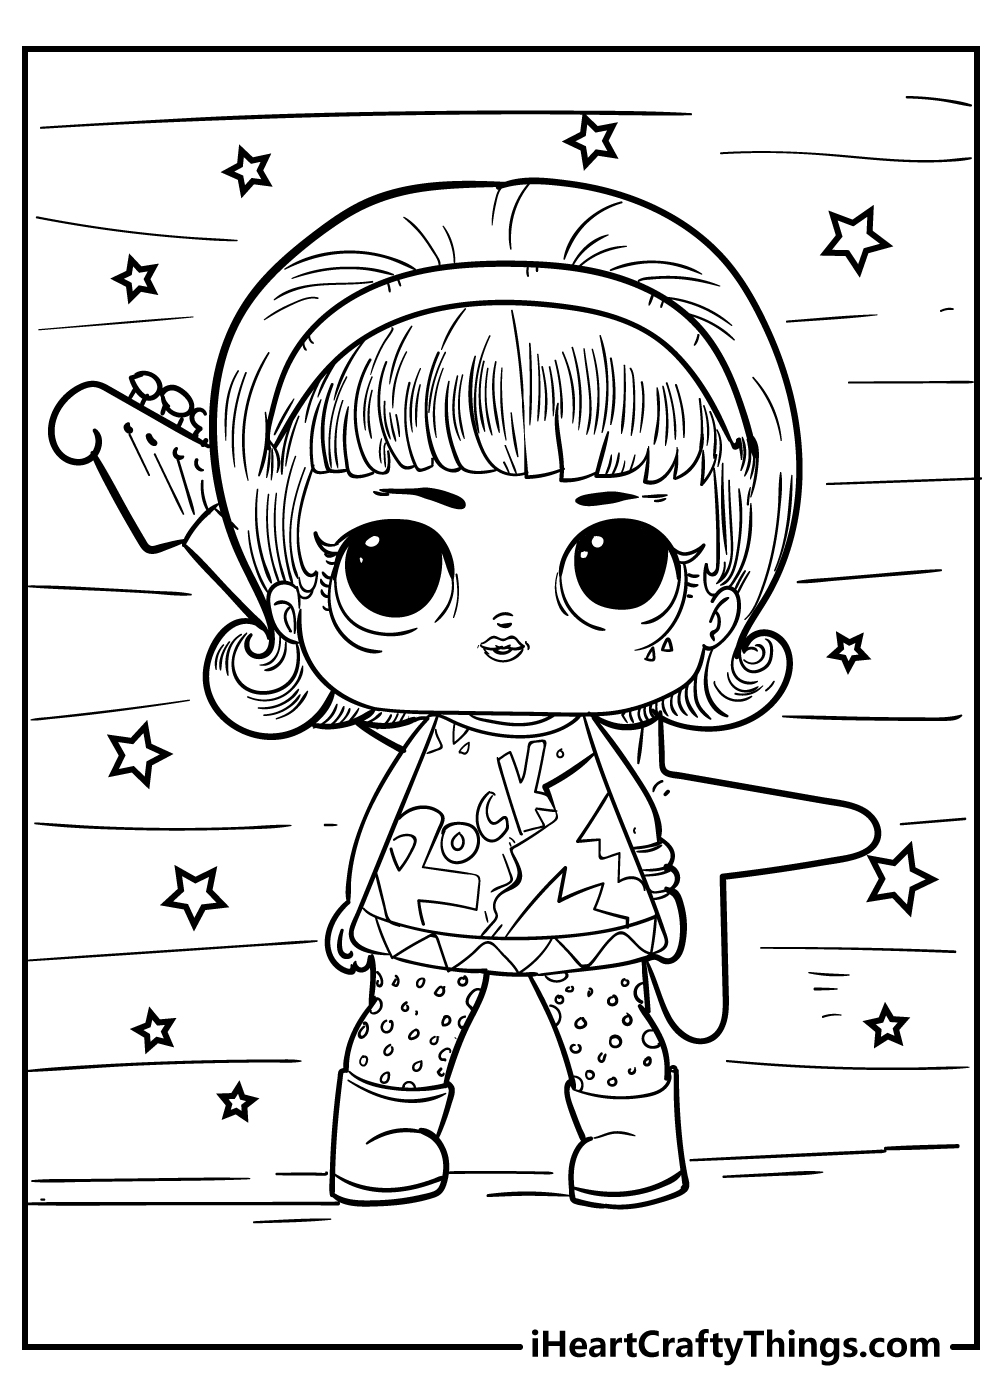 LOL doll coloring pages for toddlers free printable